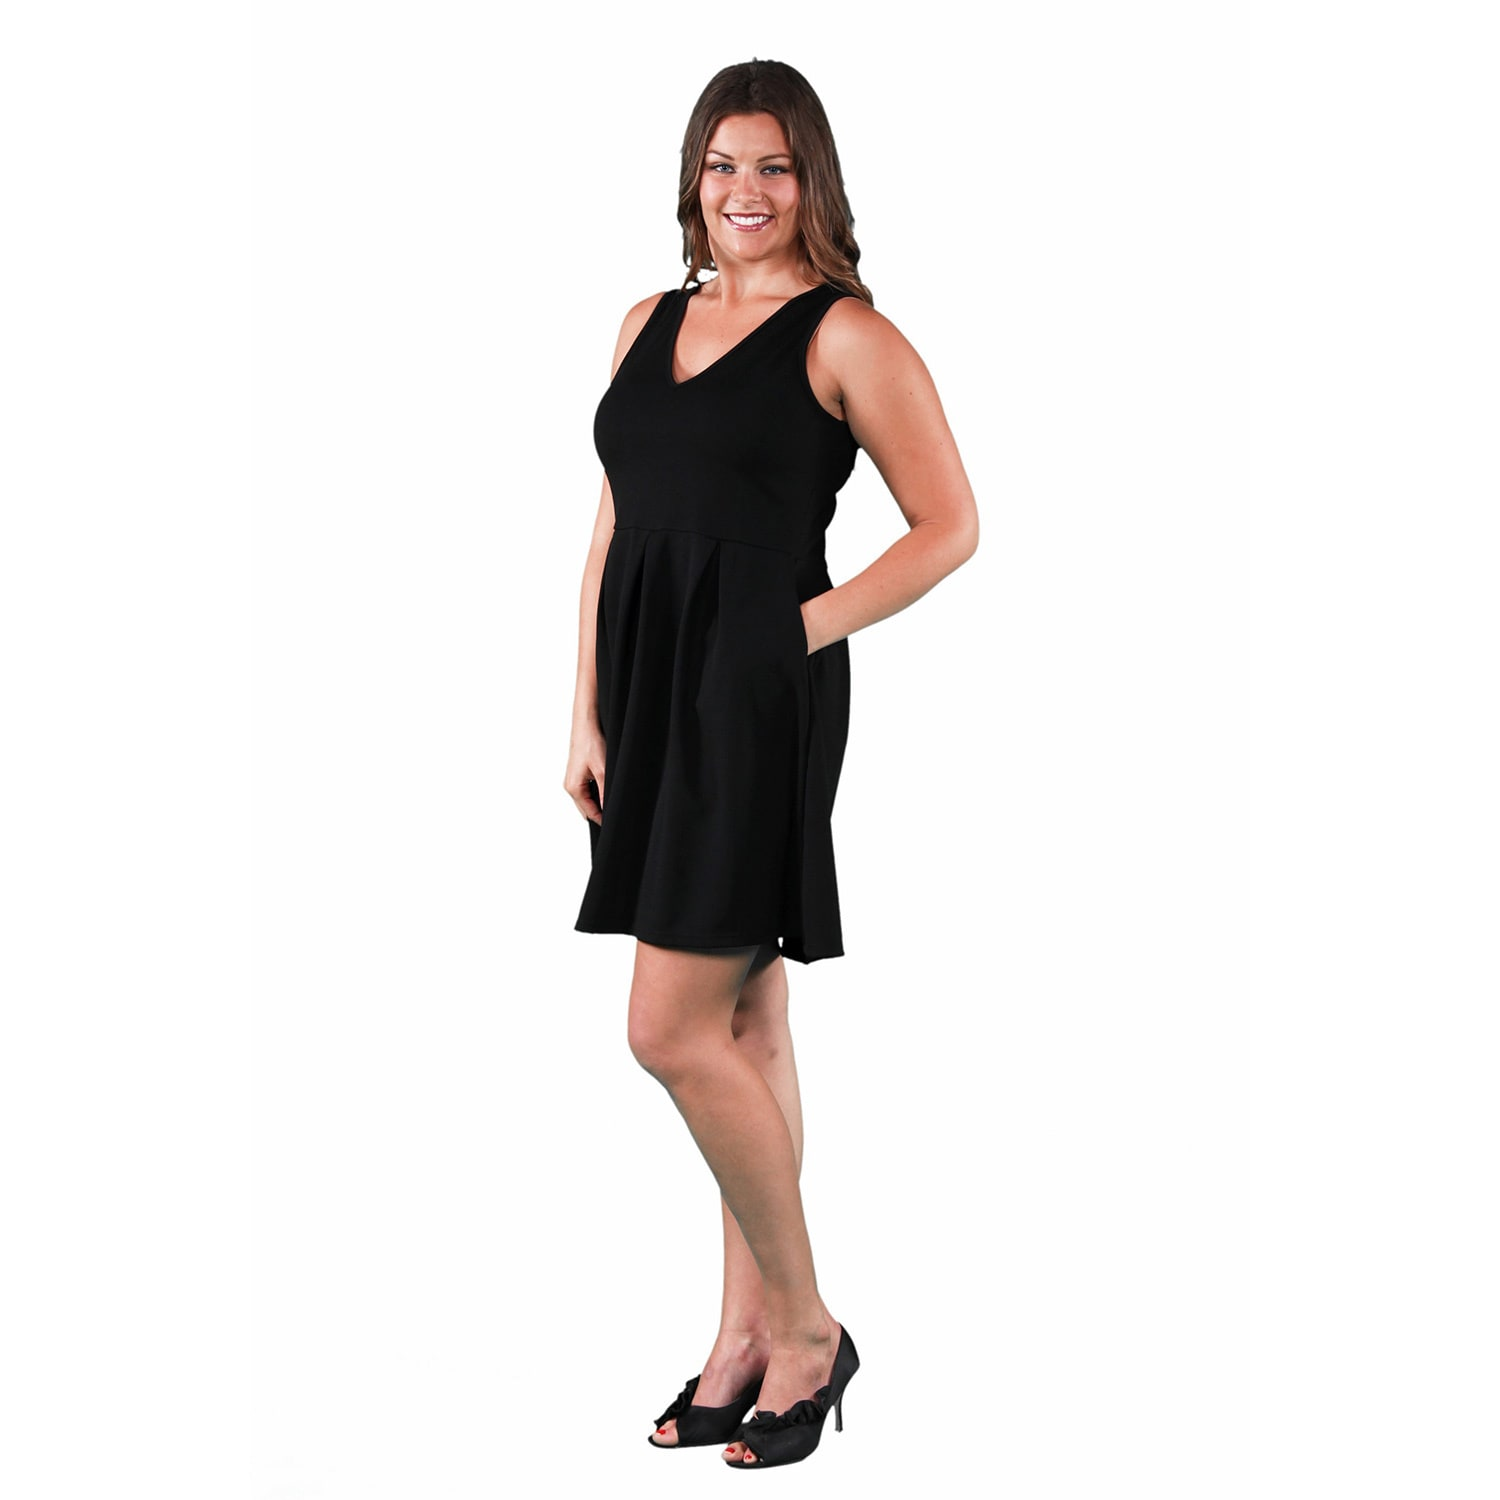 bdc7a9402bd Shop 24 7 Comfort Apparel Women s Plus Size Sleeveless A-line Dress - On  Sale - Free Shipping On Orders Over  45 - Overstock - 11551390